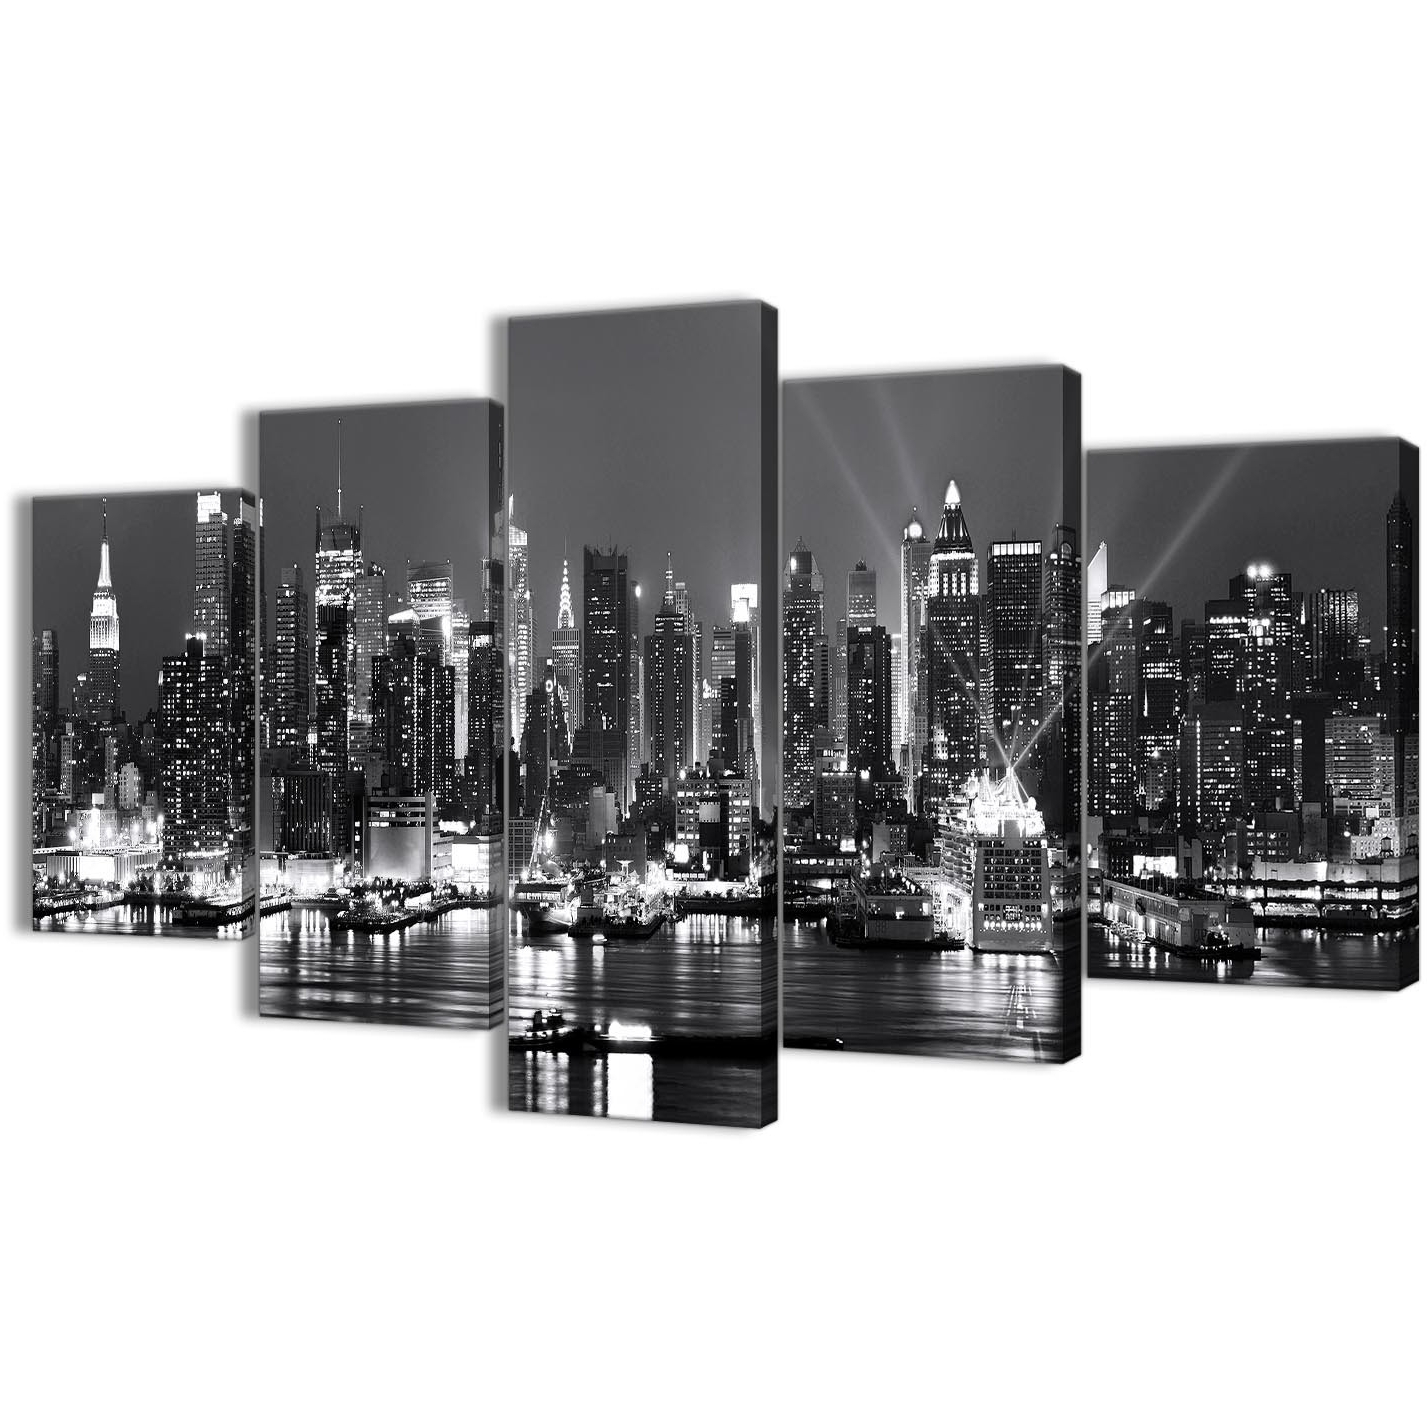 New York Wall Art Inside Most Up To Date 5 Panel Landscape Canvas Wall Art Prints – New York Hudson River (View 14 of 15)